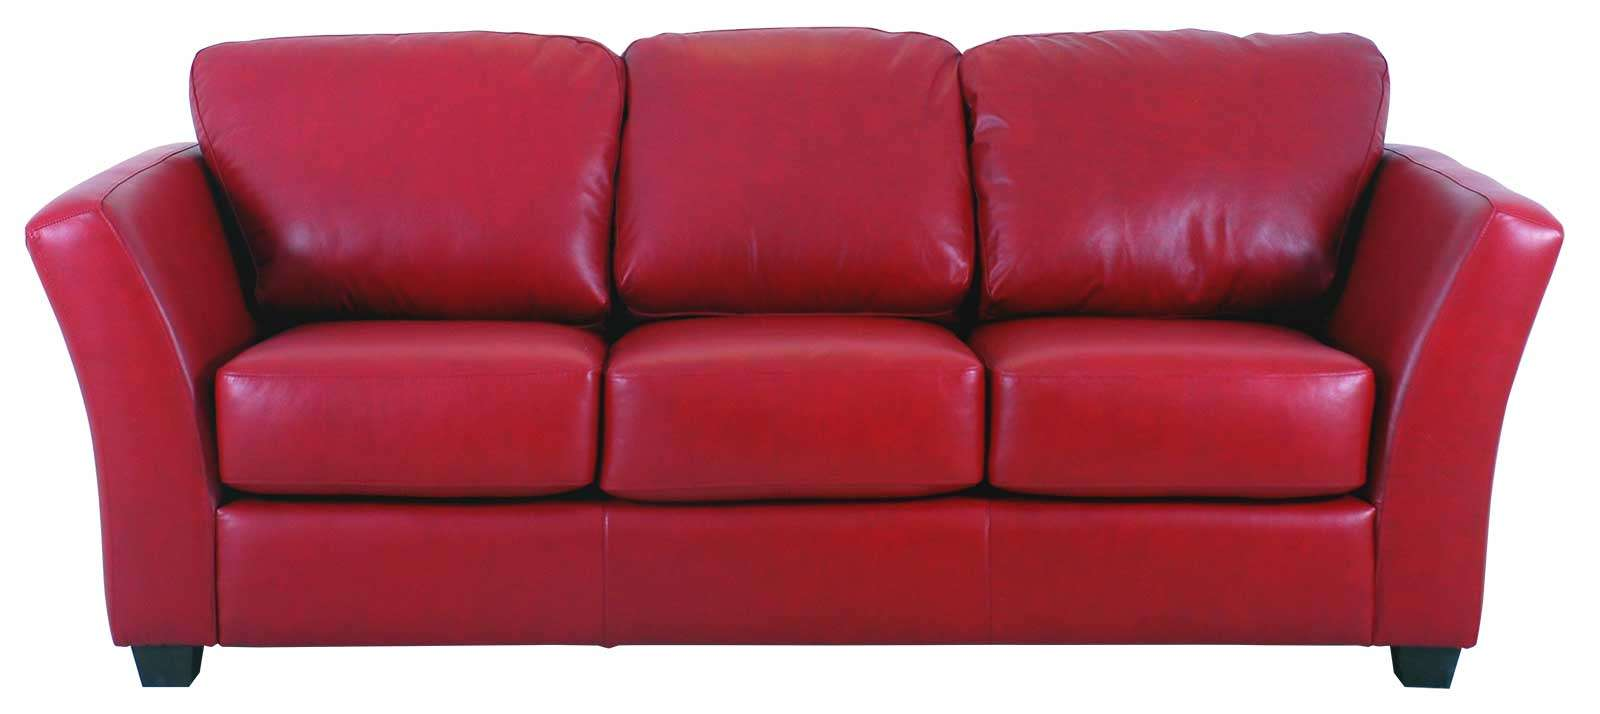 Decorating With A Red Leather Couch